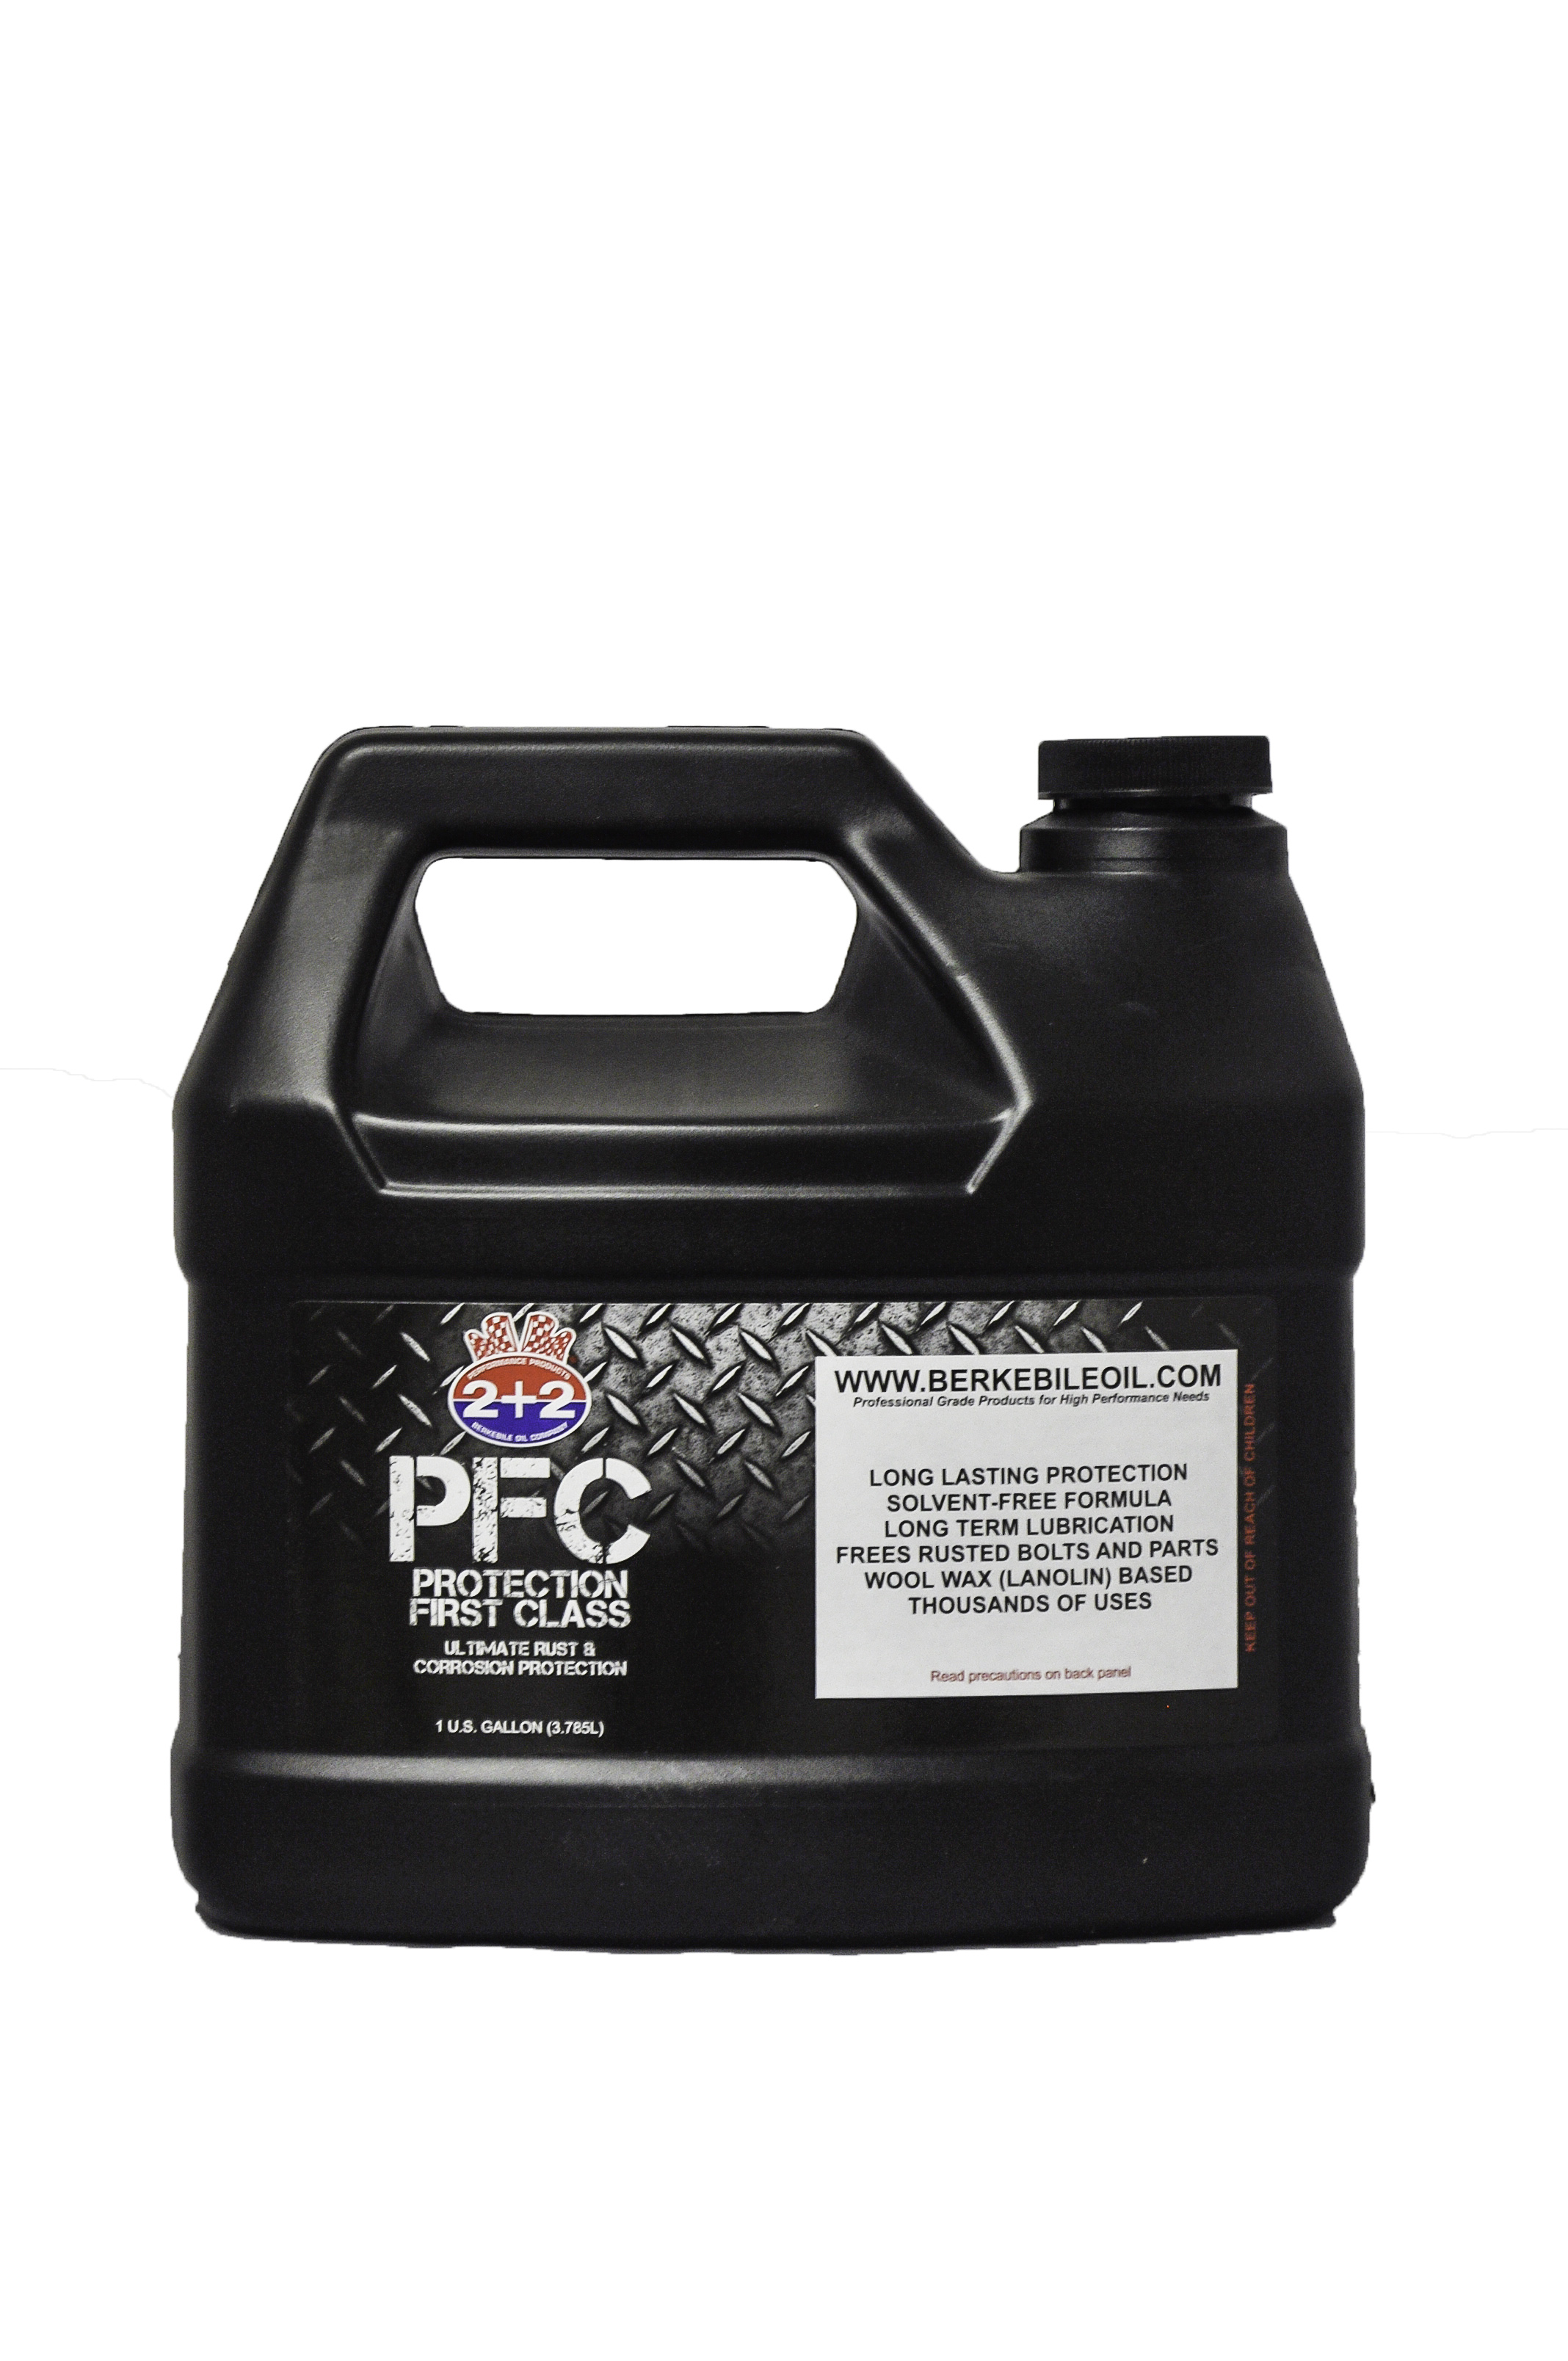 Berkebile Oil Protection First Class penetrating lubricant and rust inhibitor